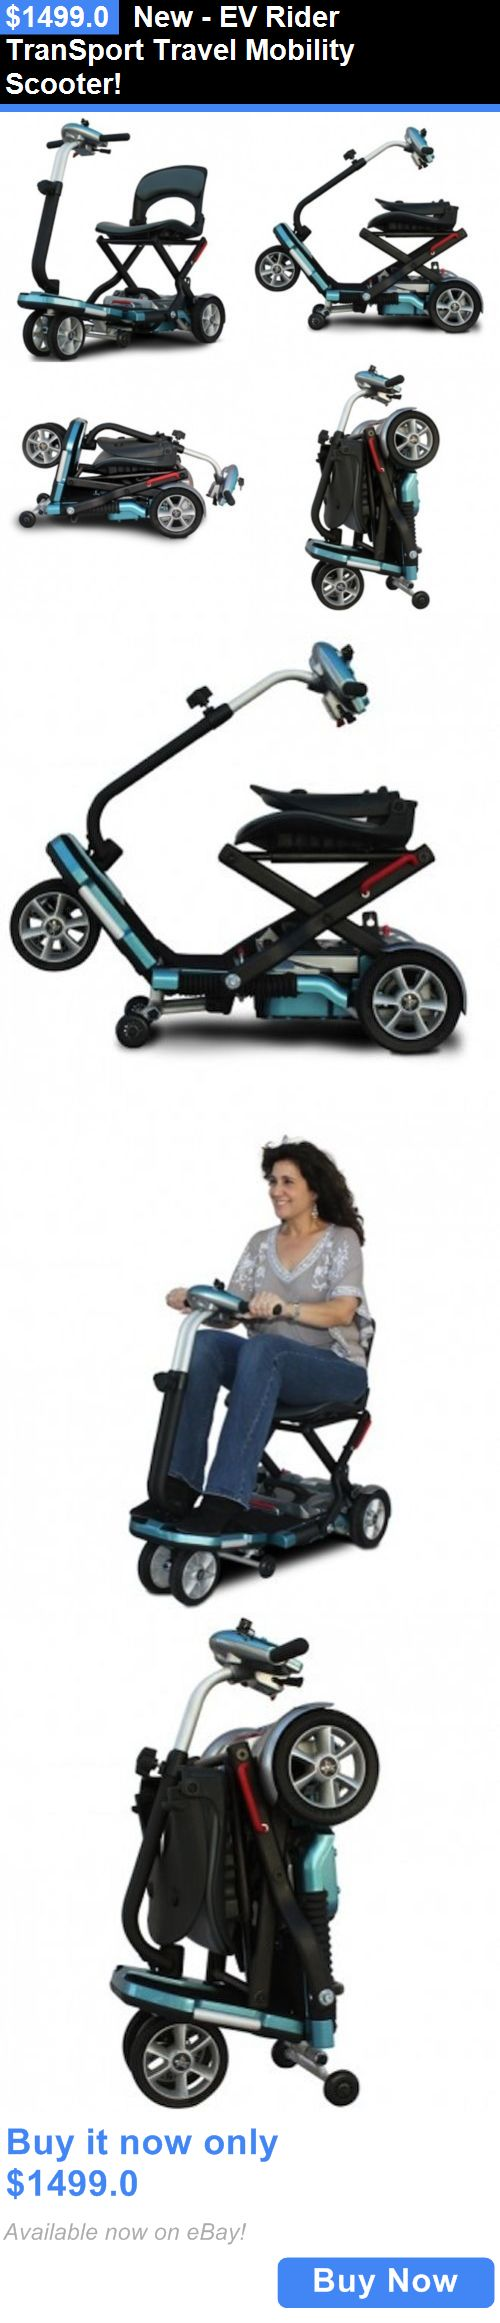 Mobility Scooters: New - Ev Rider Transport Travel Mobility Scooter! BUY IT NOW ONLY: $1499.0